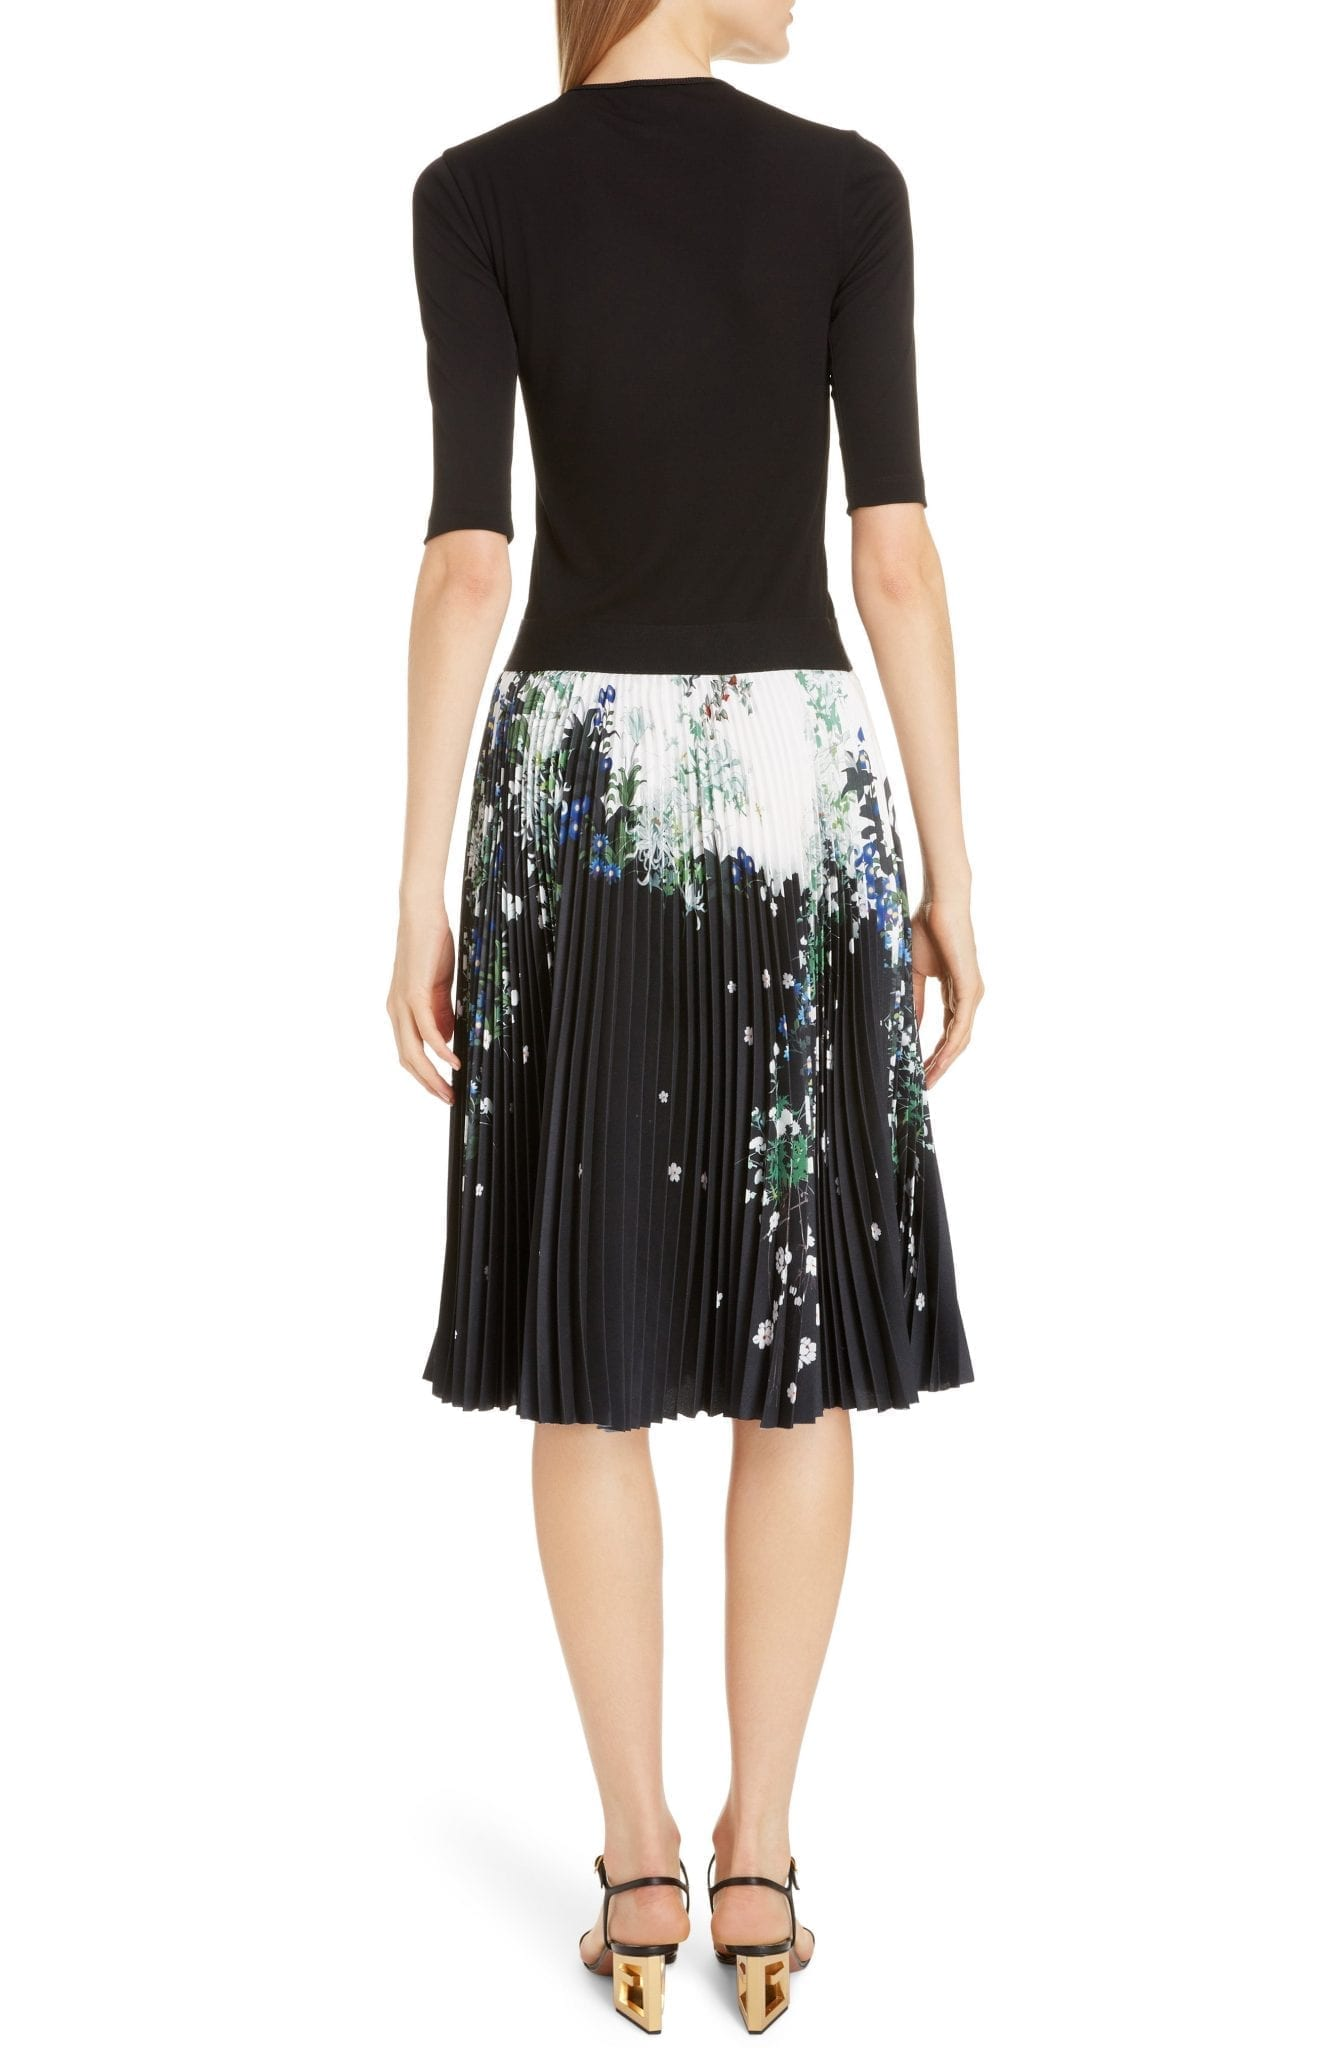 GIVENCHY Solid Knit & Floral Satin Dress